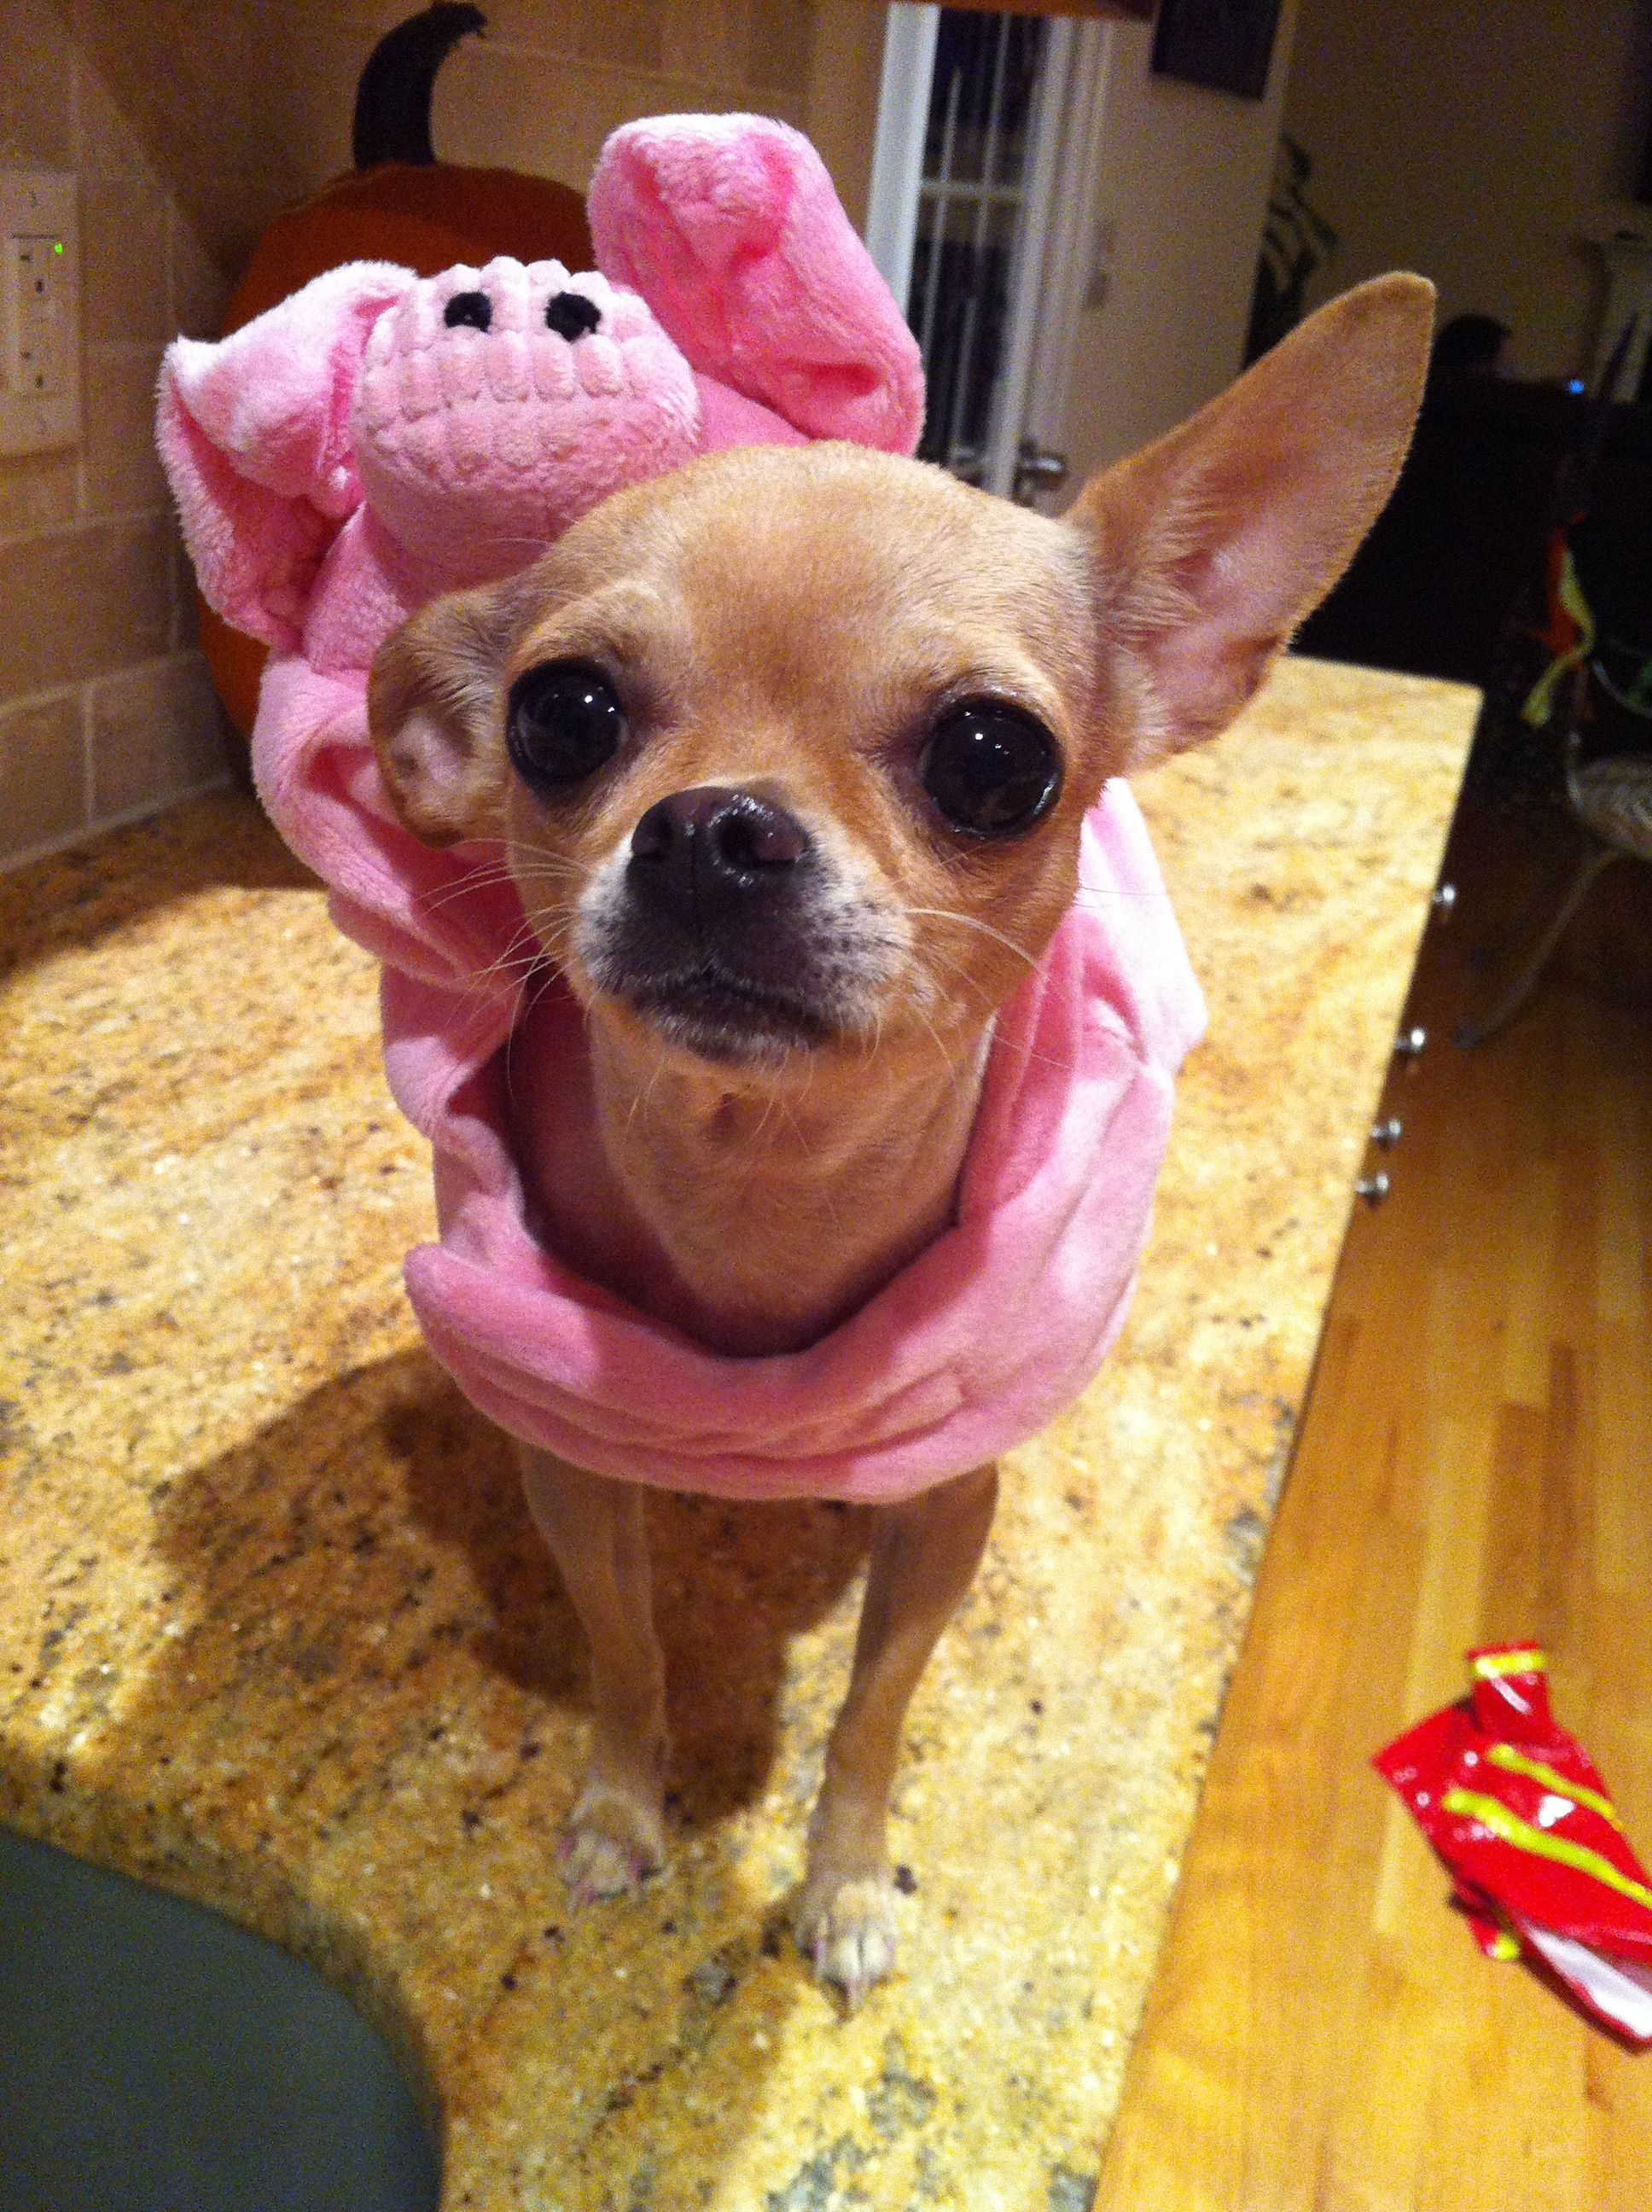 Pig Costume Chihuahua Dog Costume Halloween Pet Costumes & Chihuahua In A Flower Costume   Gardening: Flower and Vegetables